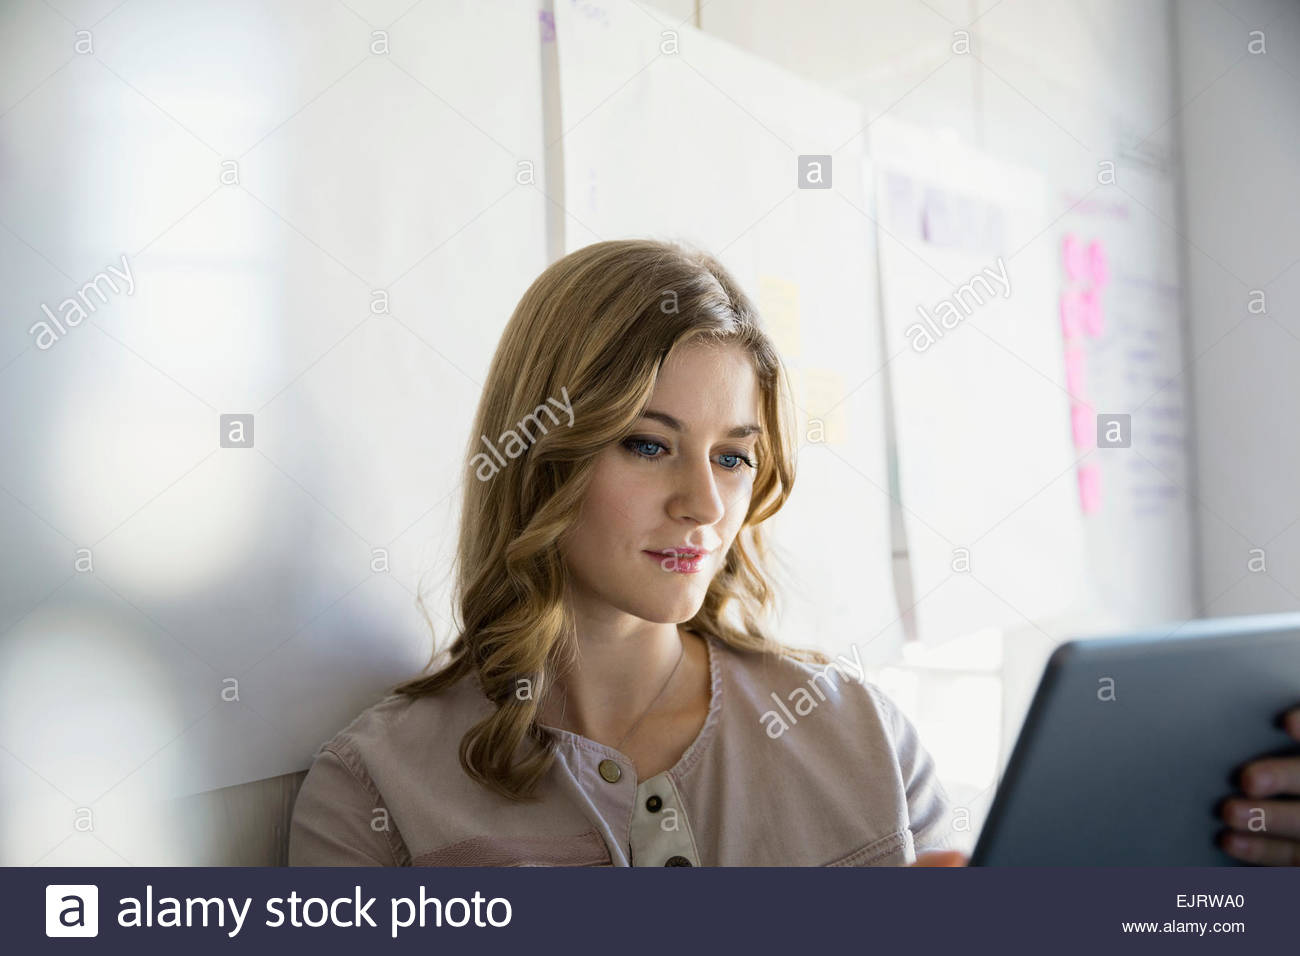 Businesswoman using digital tablet Photo Stock